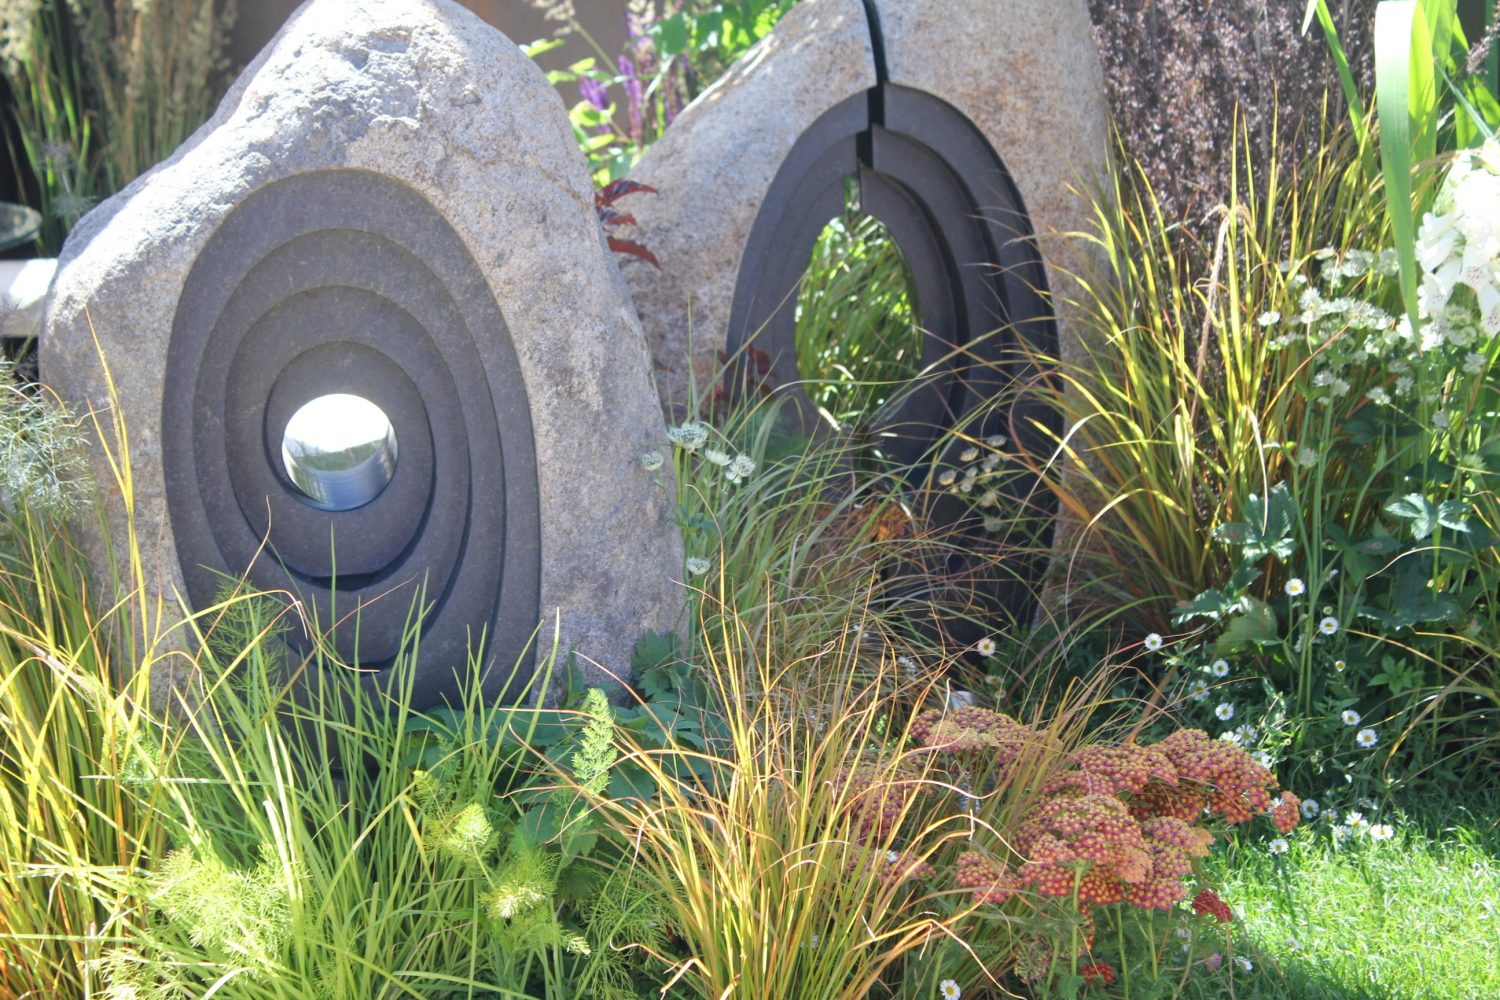 It is important to have focal points in the garden